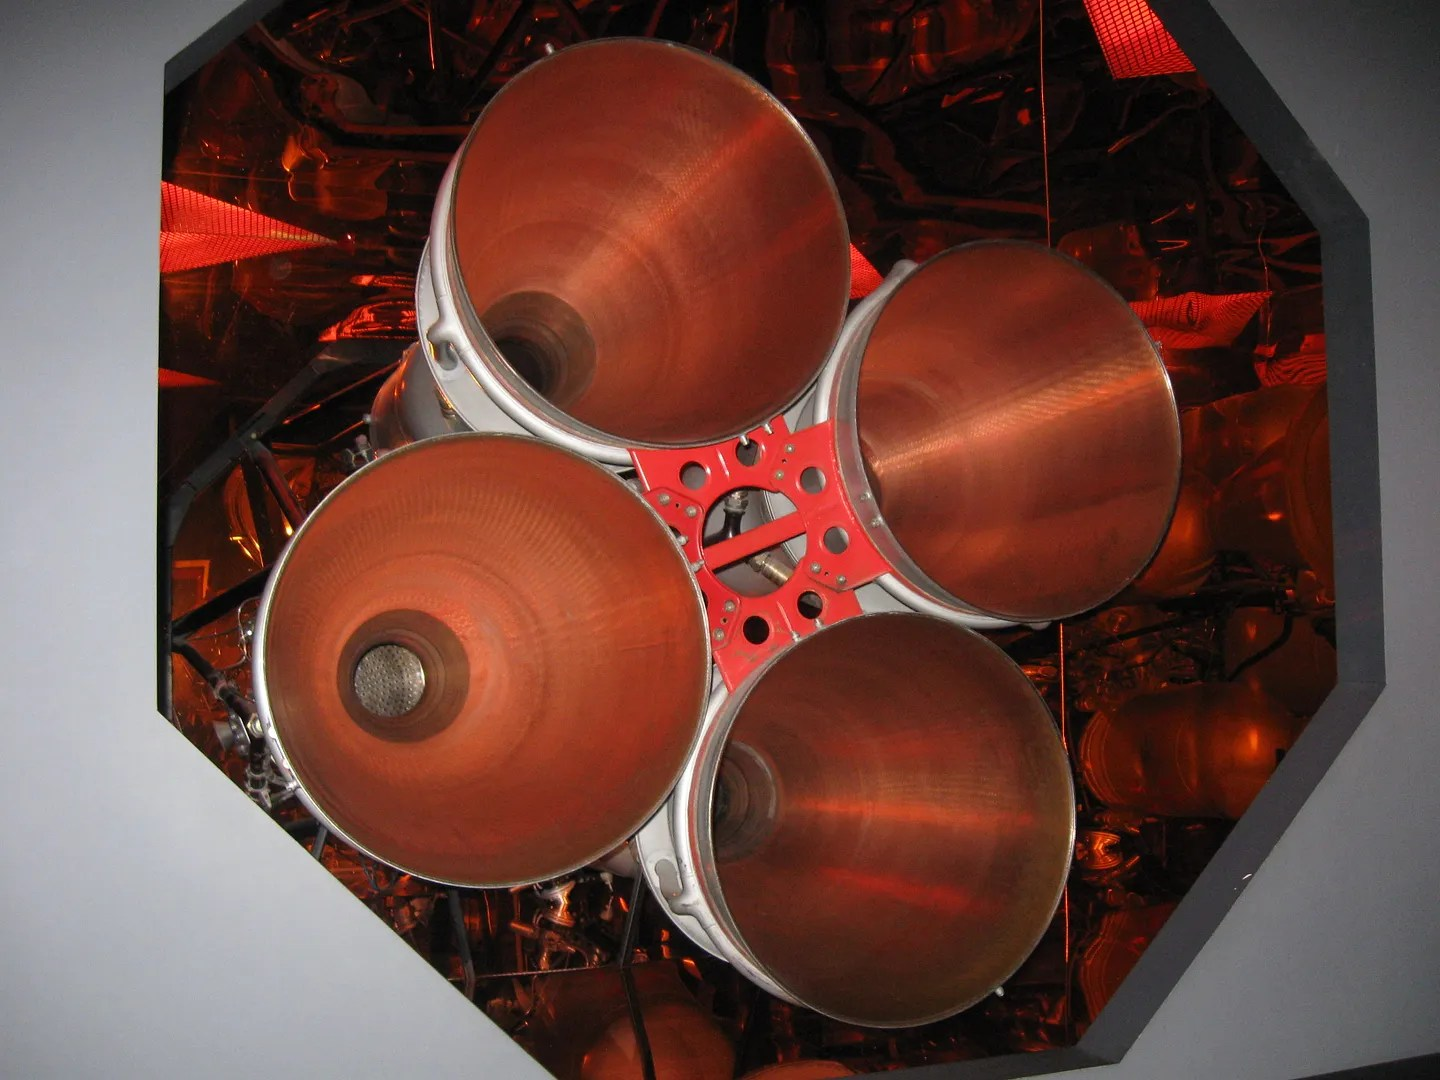 Rocket engine nozzles, Kansas Cosmosphere & Space Center, Hutchinson, Kansas